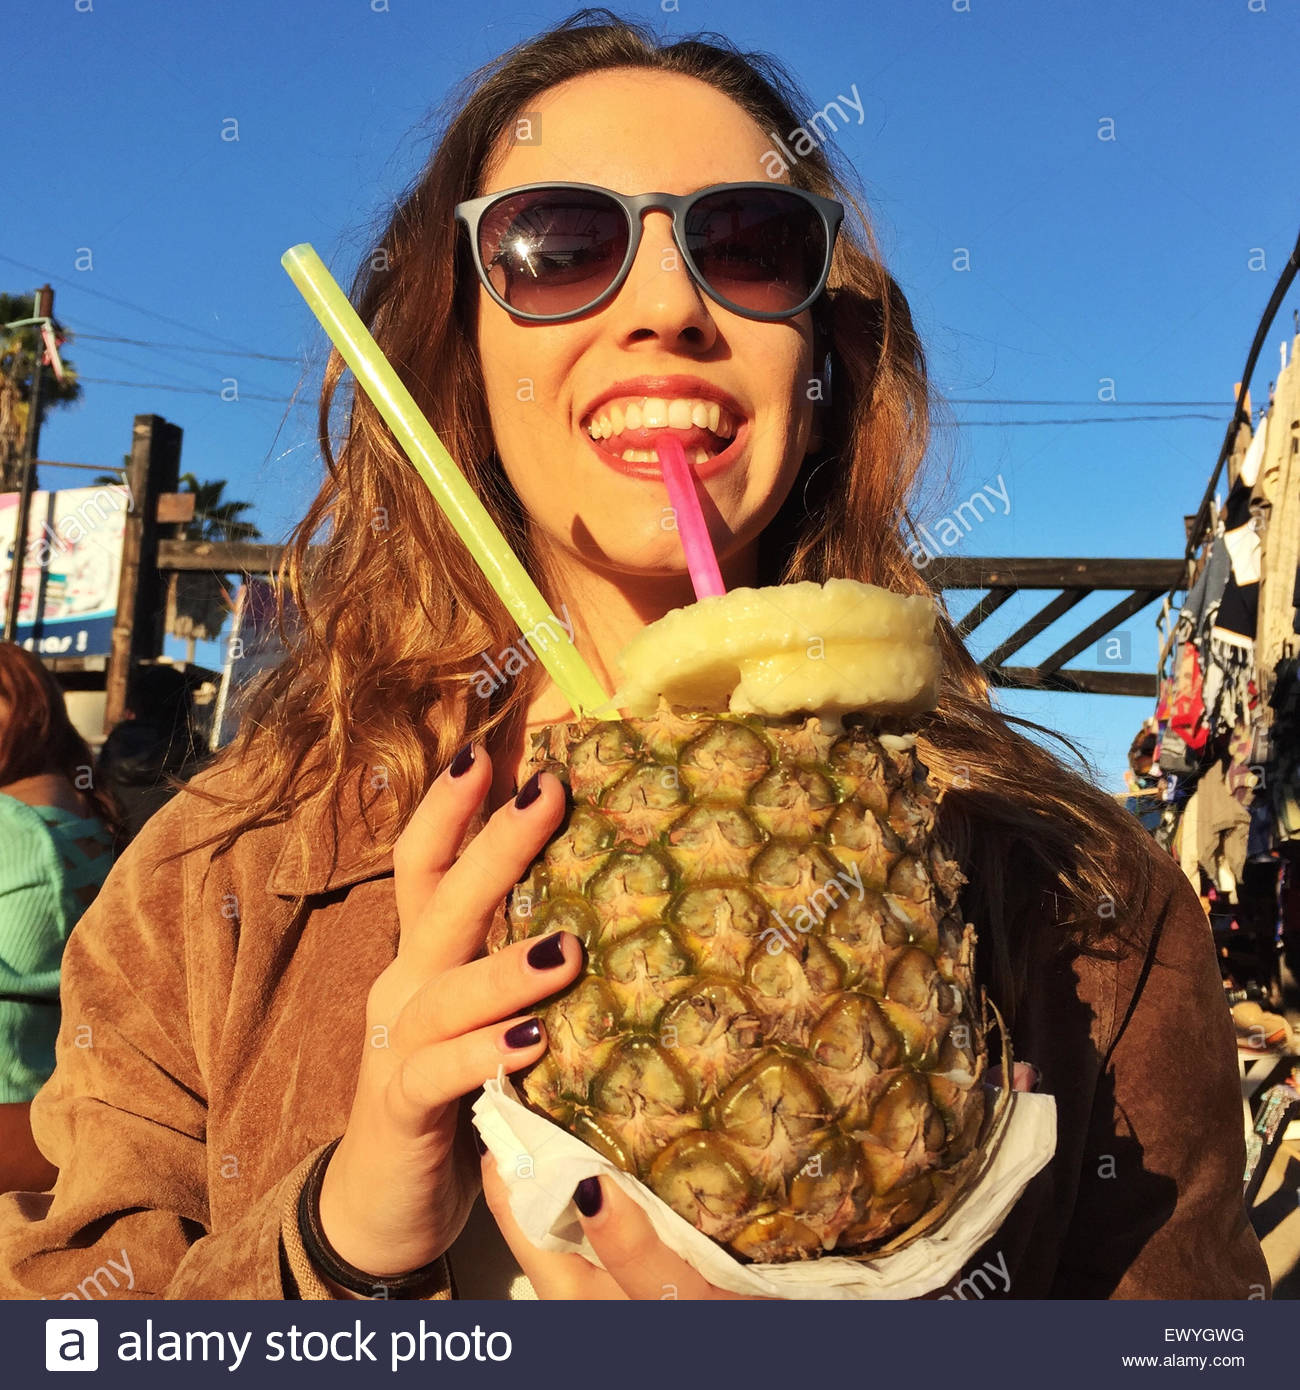 Girl sipping a non alcoholic Pina Colada from a pineapple,  Mexico - Stock Image